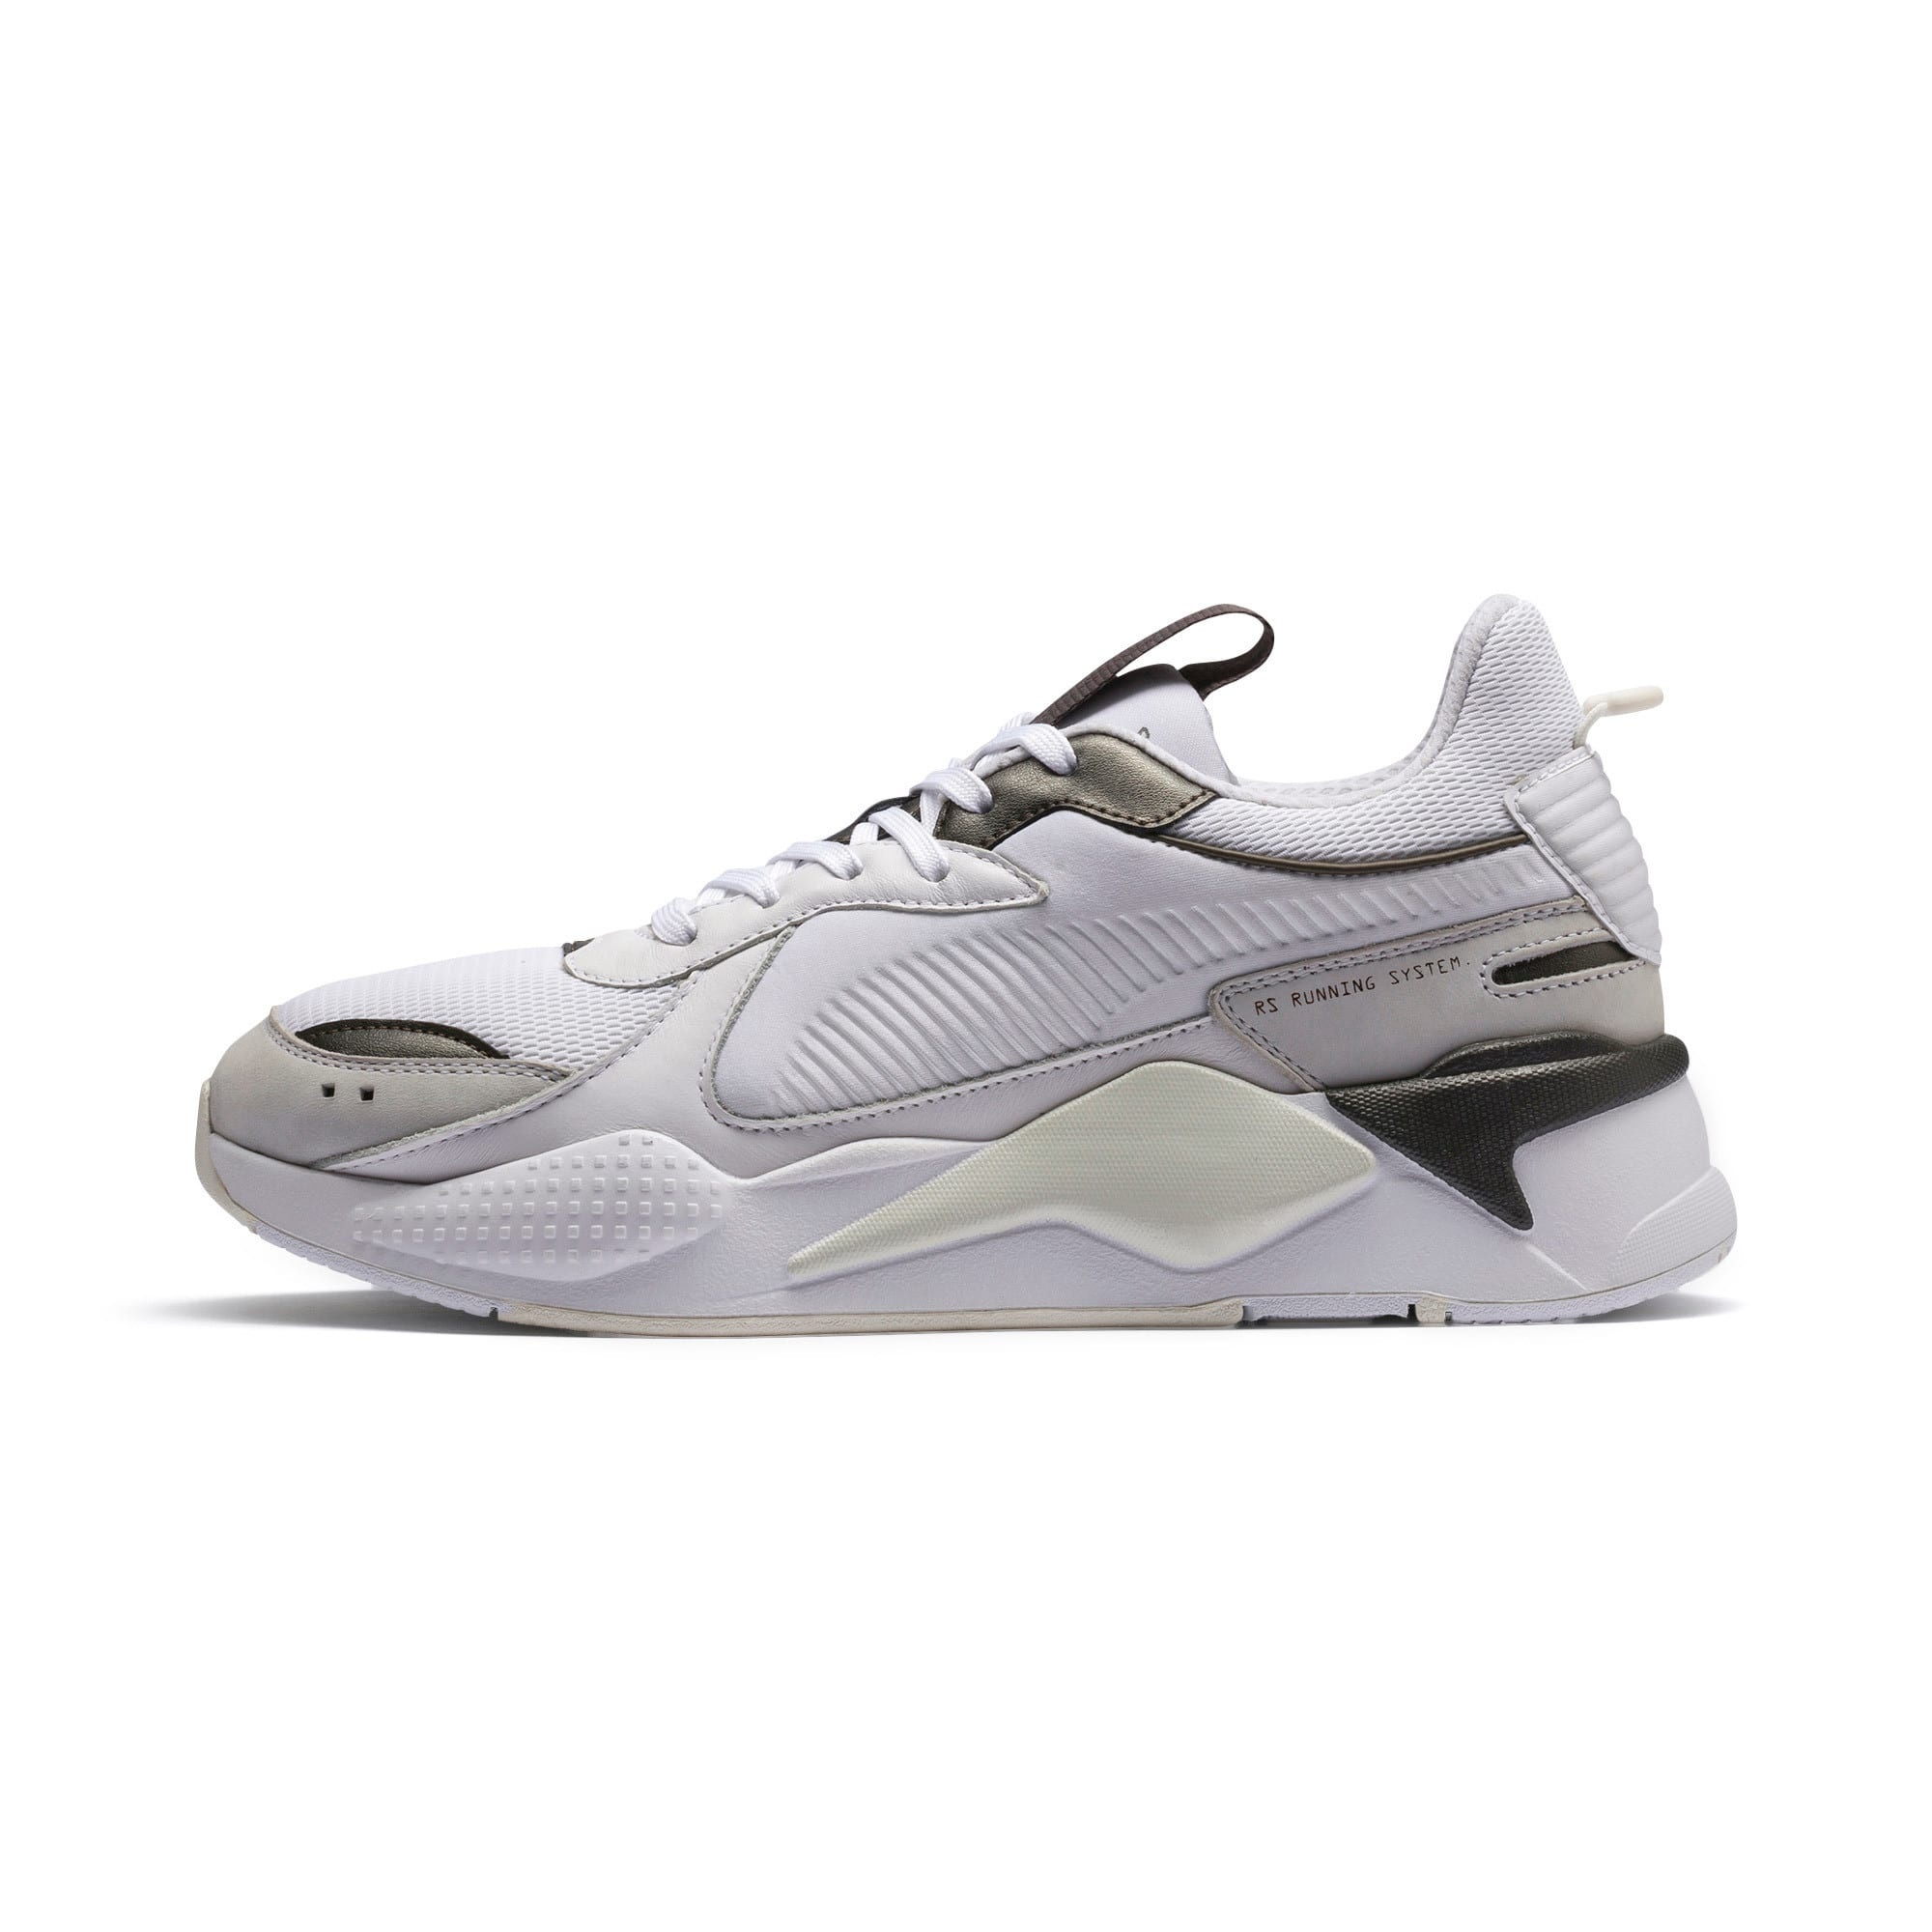 Thumbnail 1 of RS-X TROPHY, Puma White-Bronze, medium-JPN